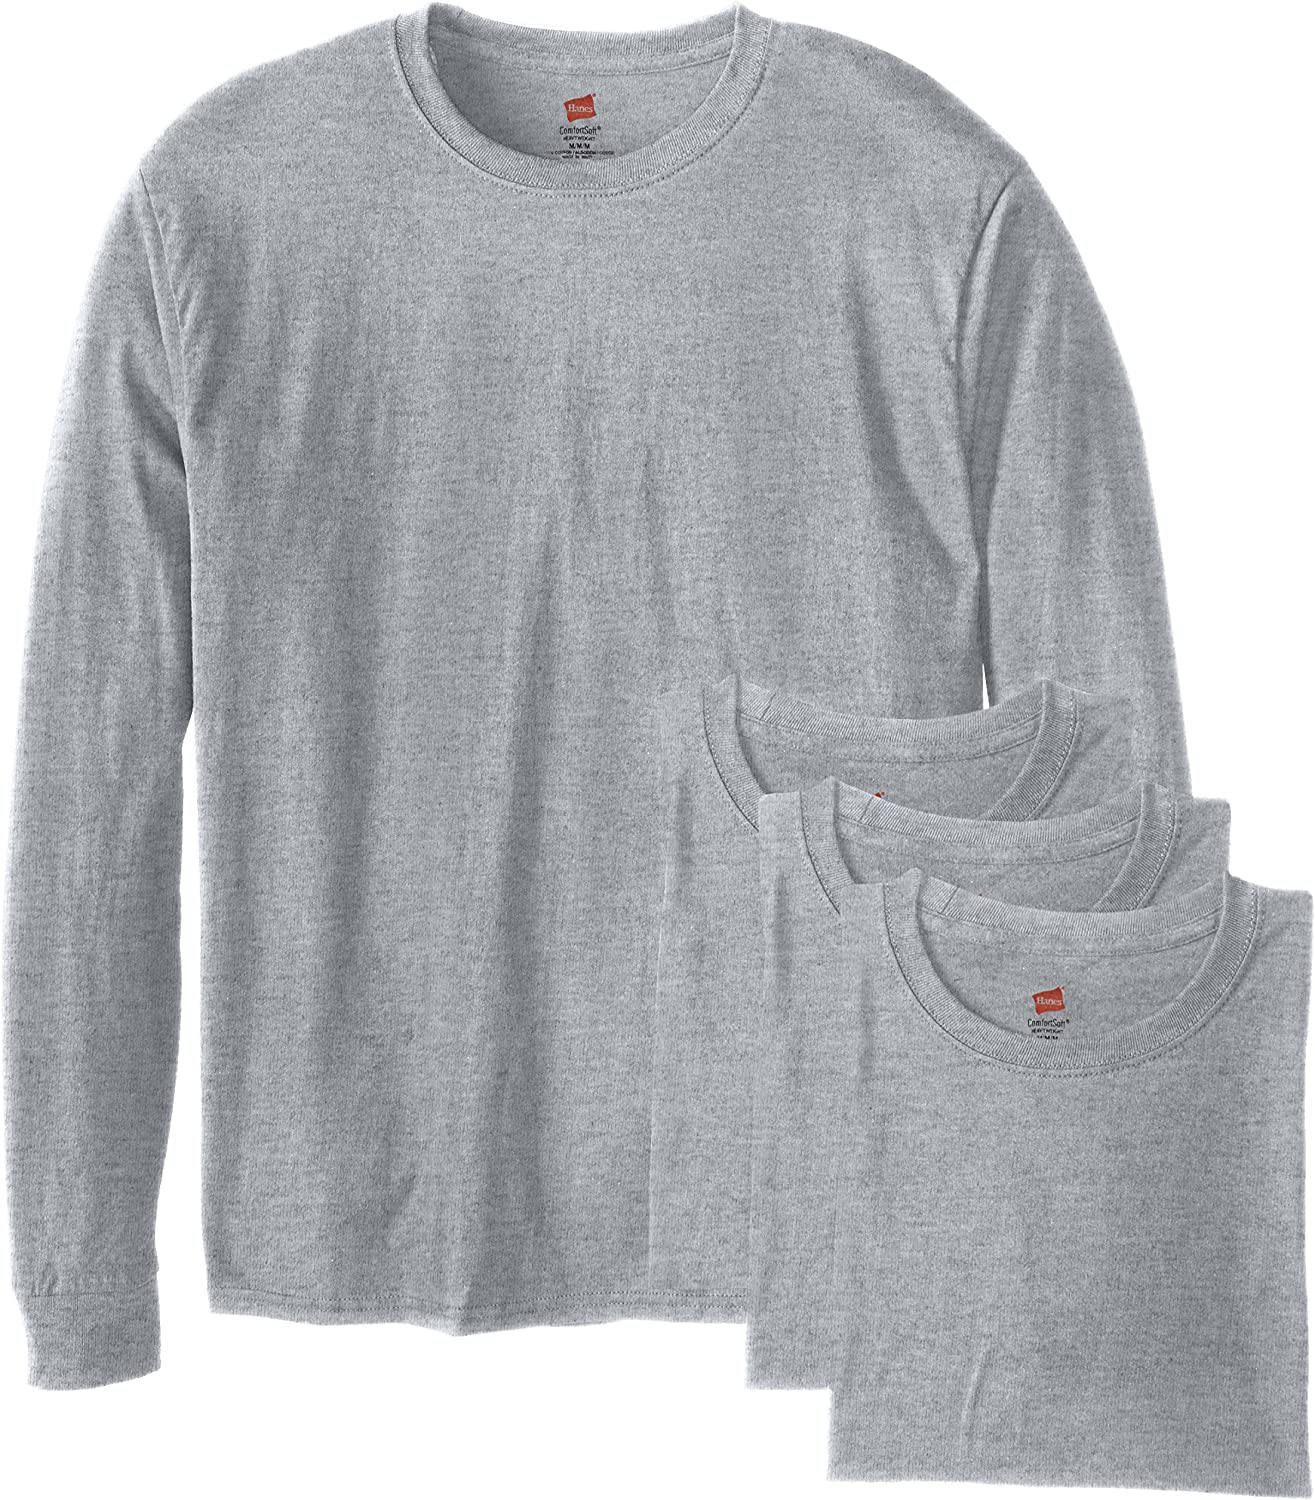 Hanes Men's Long-Sleeve ComfortSoft T-Shirt (Pack of 4) |